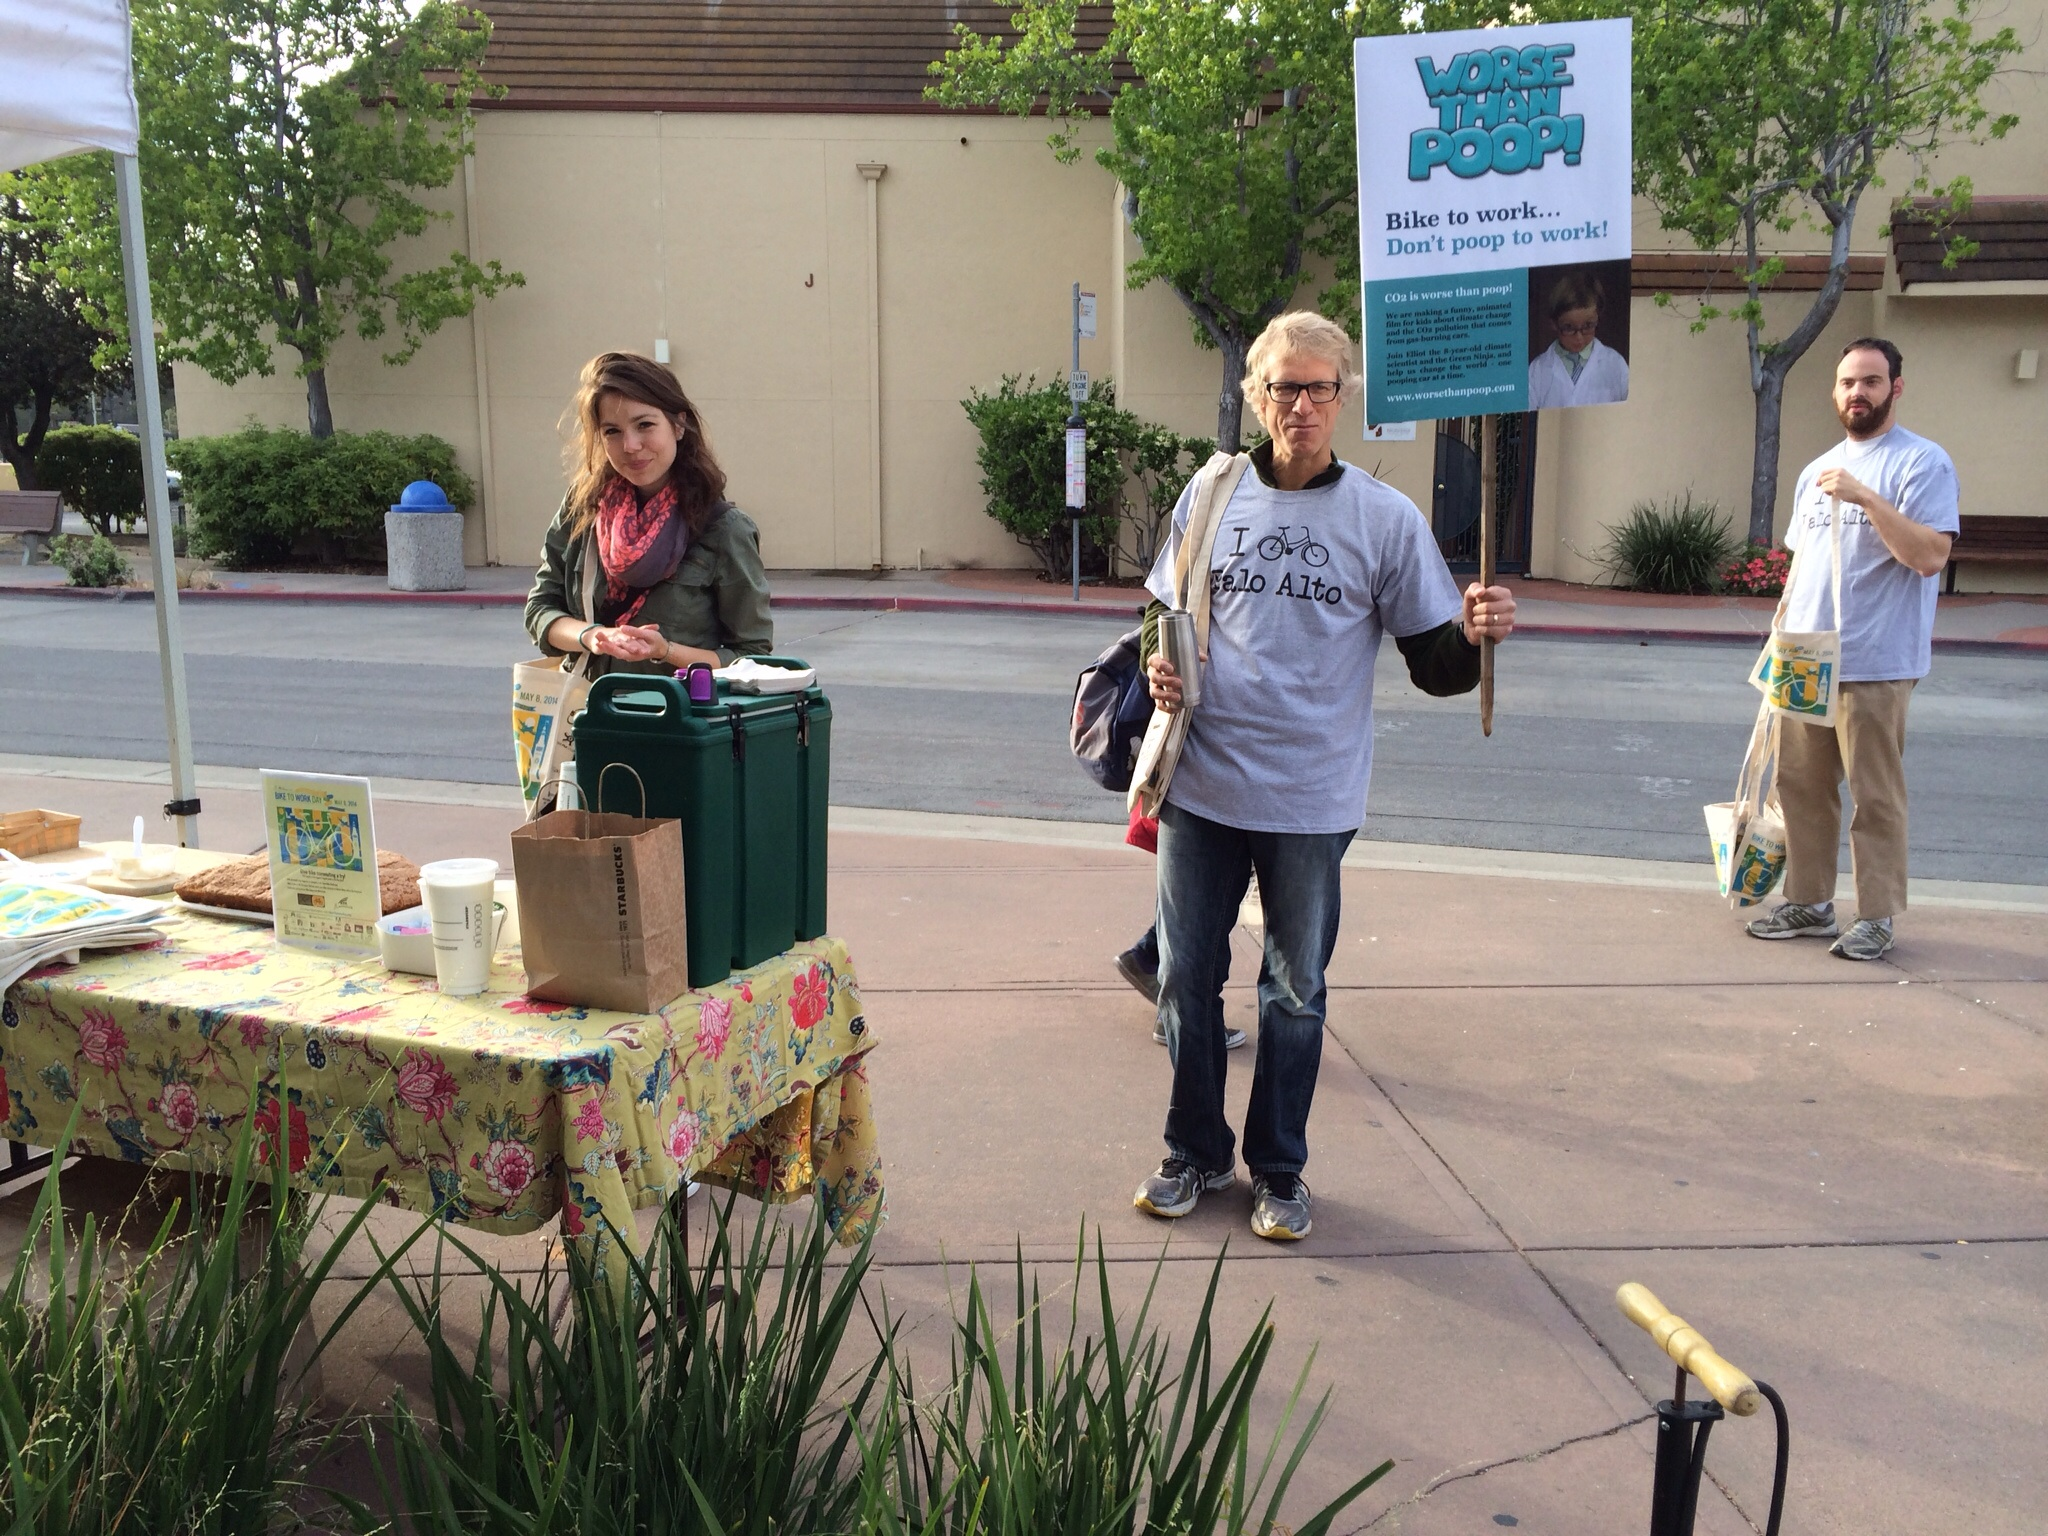 """Sven Thesen at 7am, waiting for commuters and chanting """"Worse Than Poop!"""""""